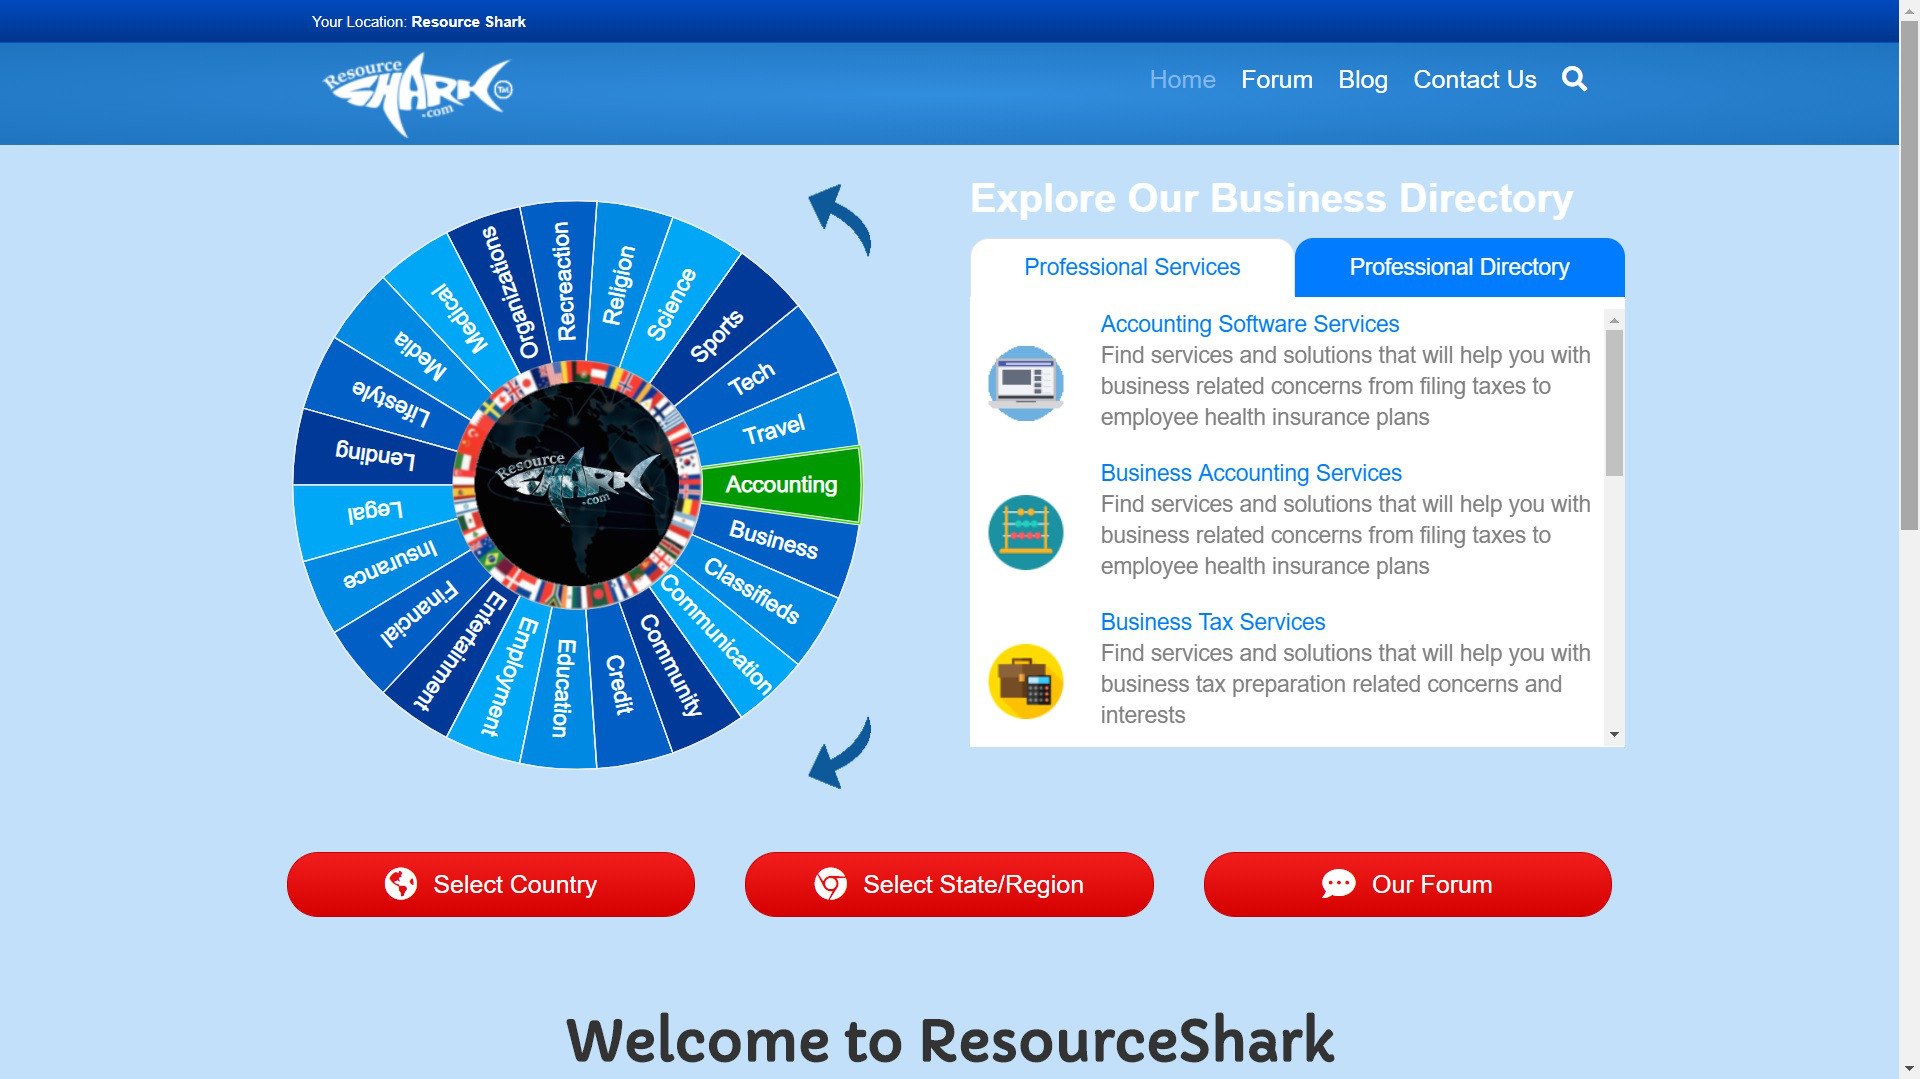 ResourceShark